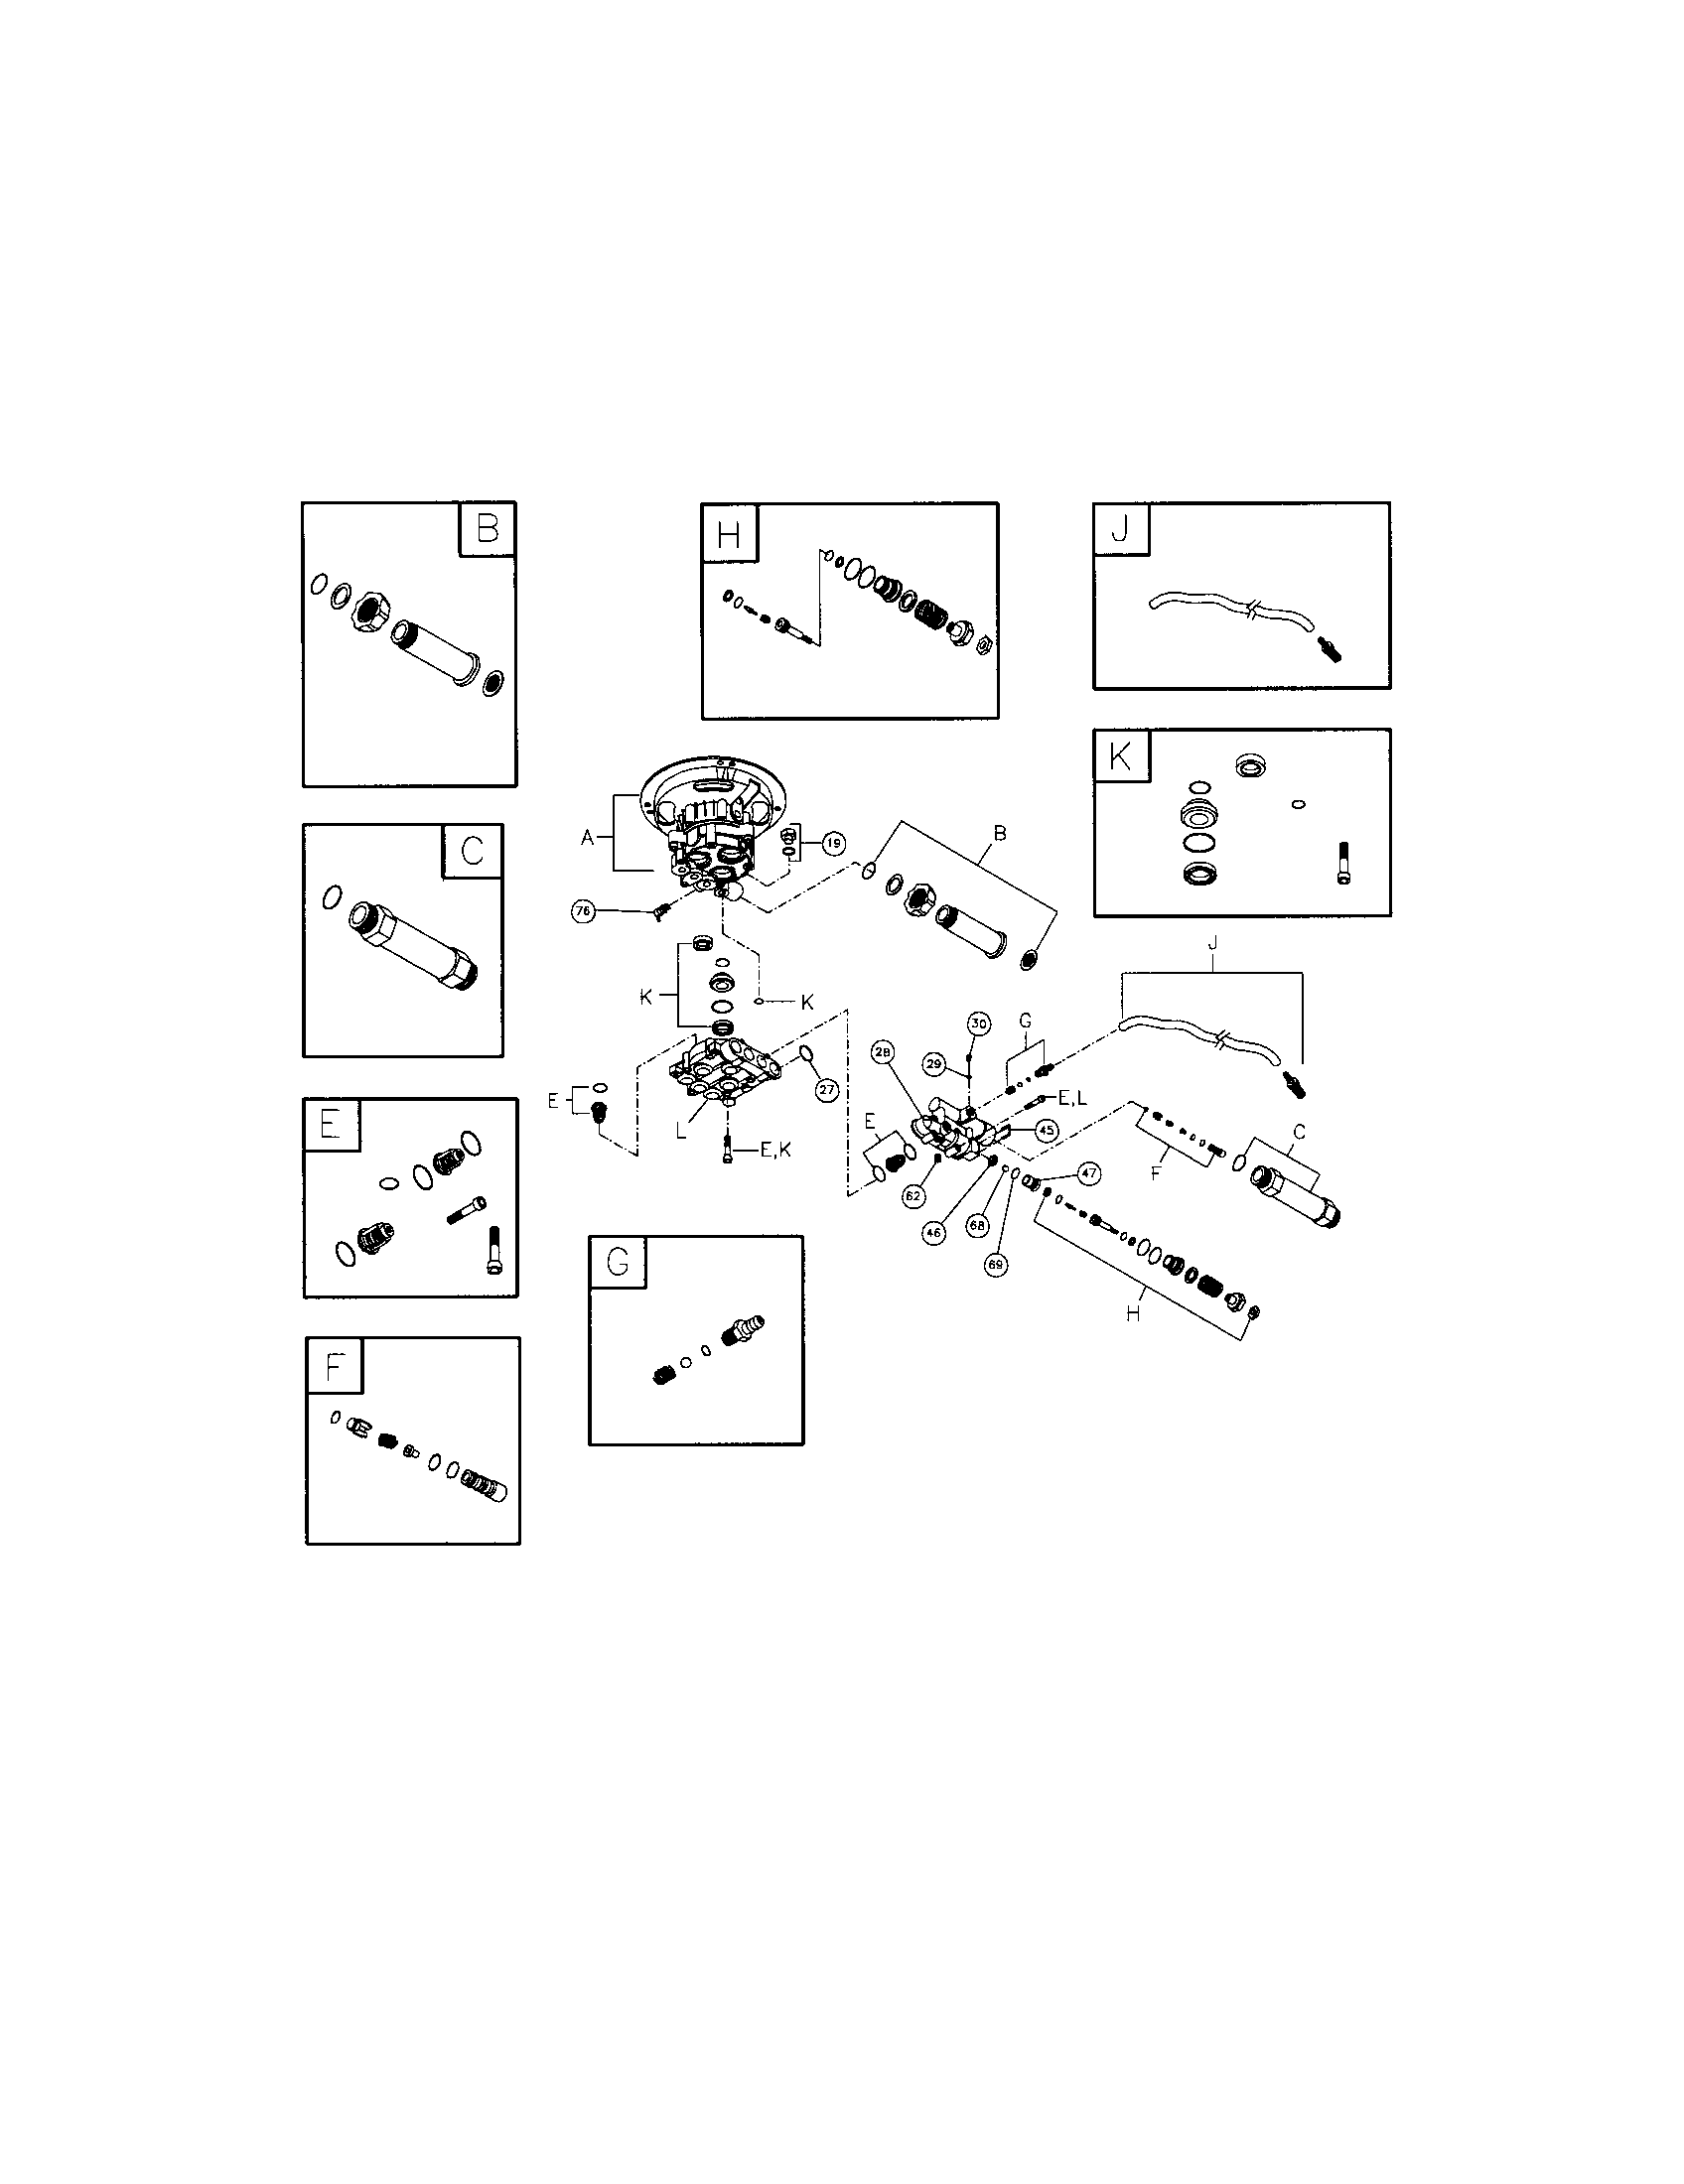 PUMP Diagram & Parts List for Model 020228 BRIGGS-STRATTON